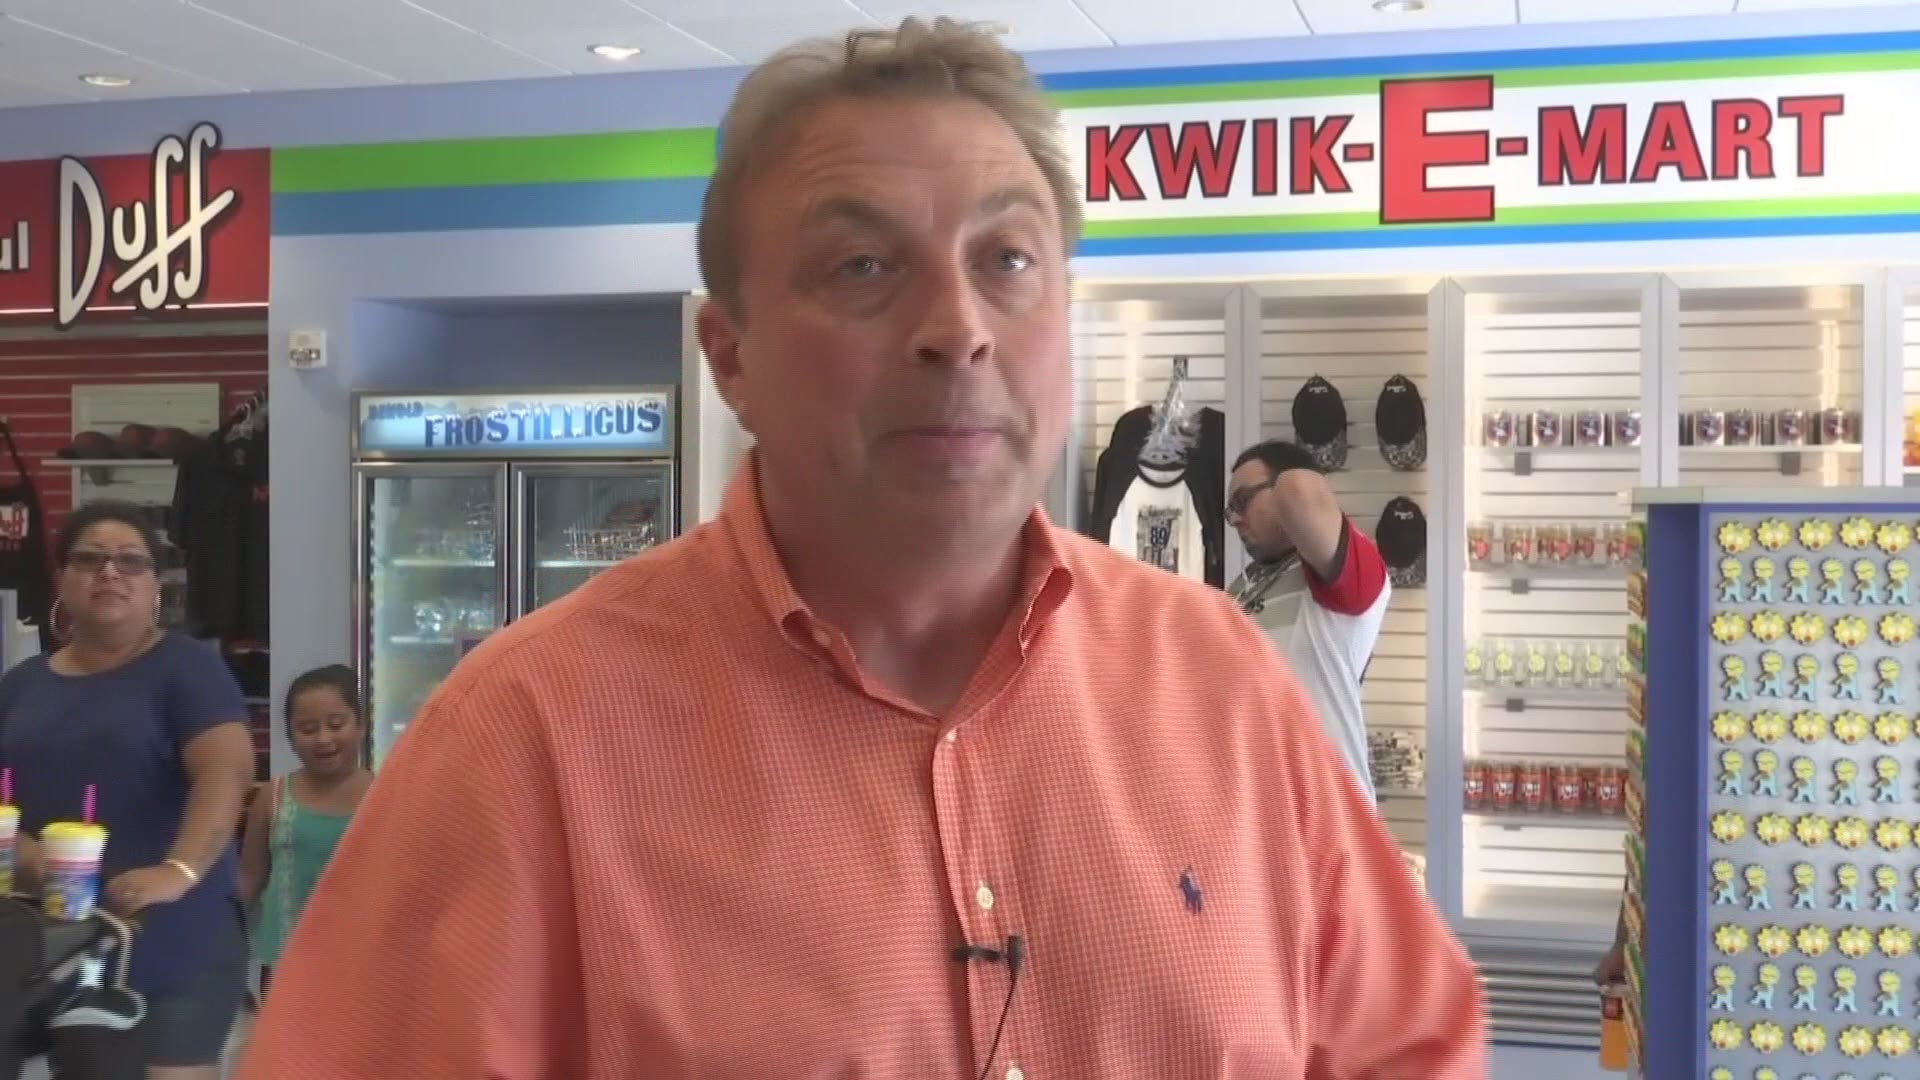 First Kwik E Mart Store From The Simpsons Opens In Myrtle Beach Abc10 Com